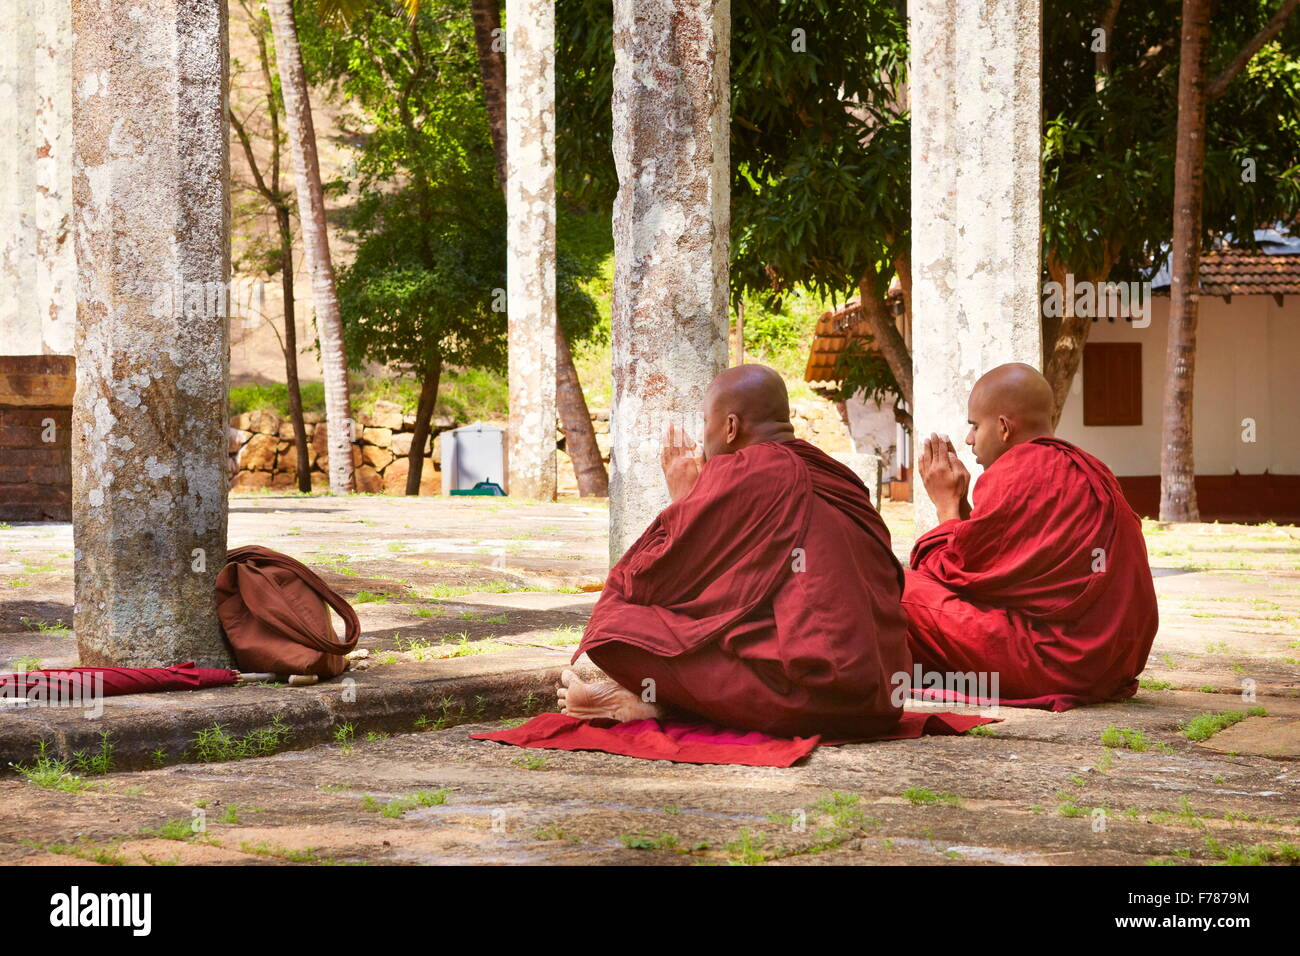 Sri Lanka - monks praying at Mihintale Temple, Ambasthale Dagoba, UNESCO - Stock Image